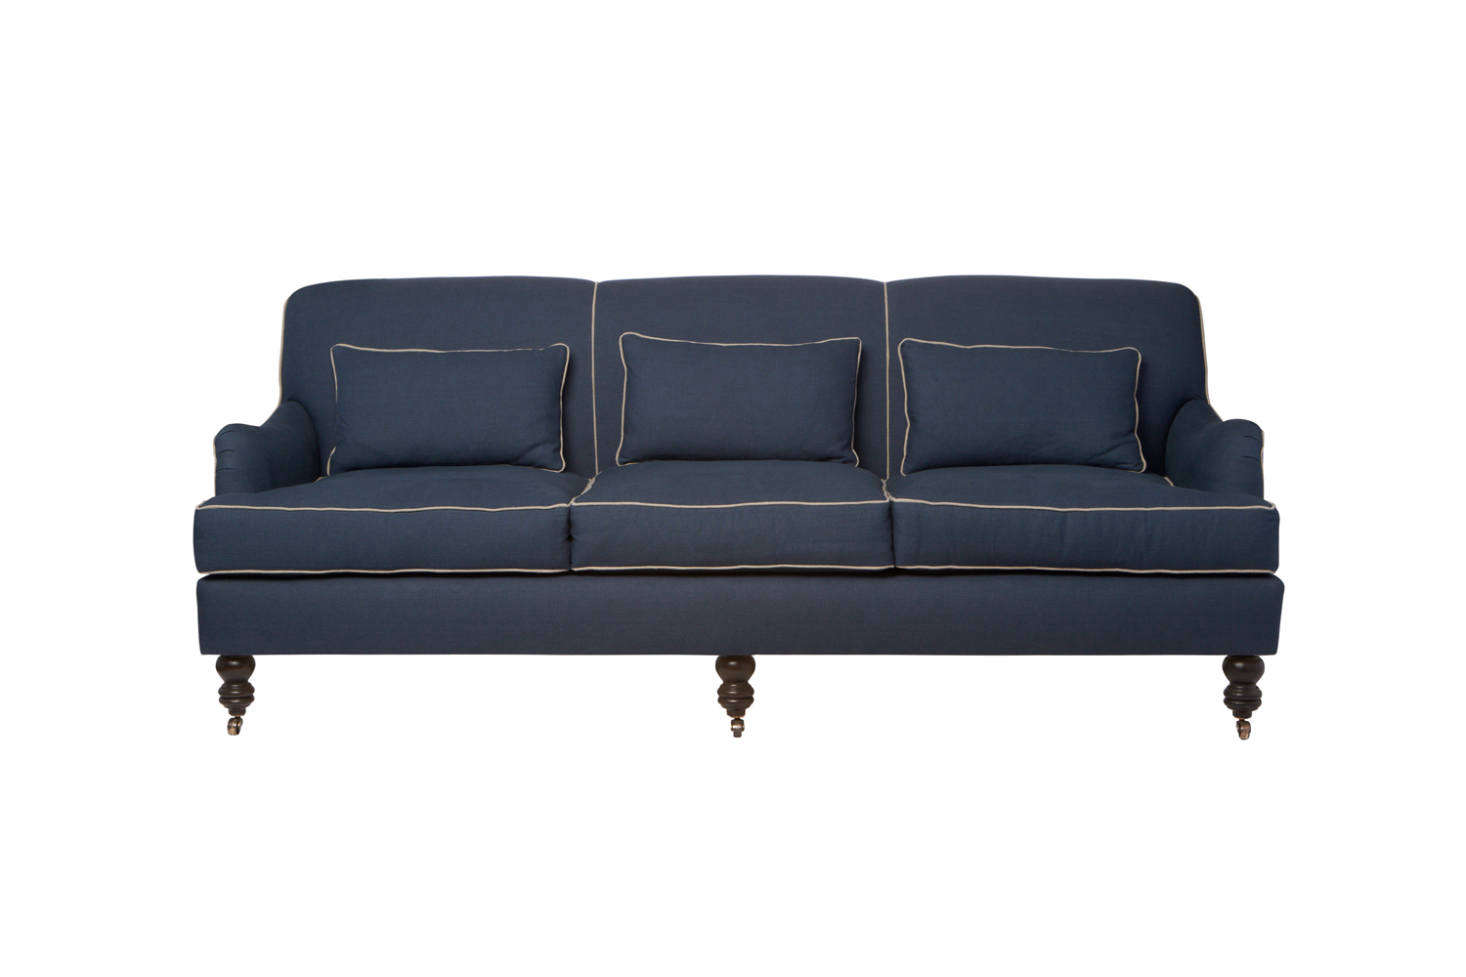 Another, more ornate style from Cisco Brothers, the Beaumont Sofa has roll arms, legs on casters, and piping. Contact Cisco Brothers for price and dealer information. It can also be found for $3,815 at Collyer's Mansion.